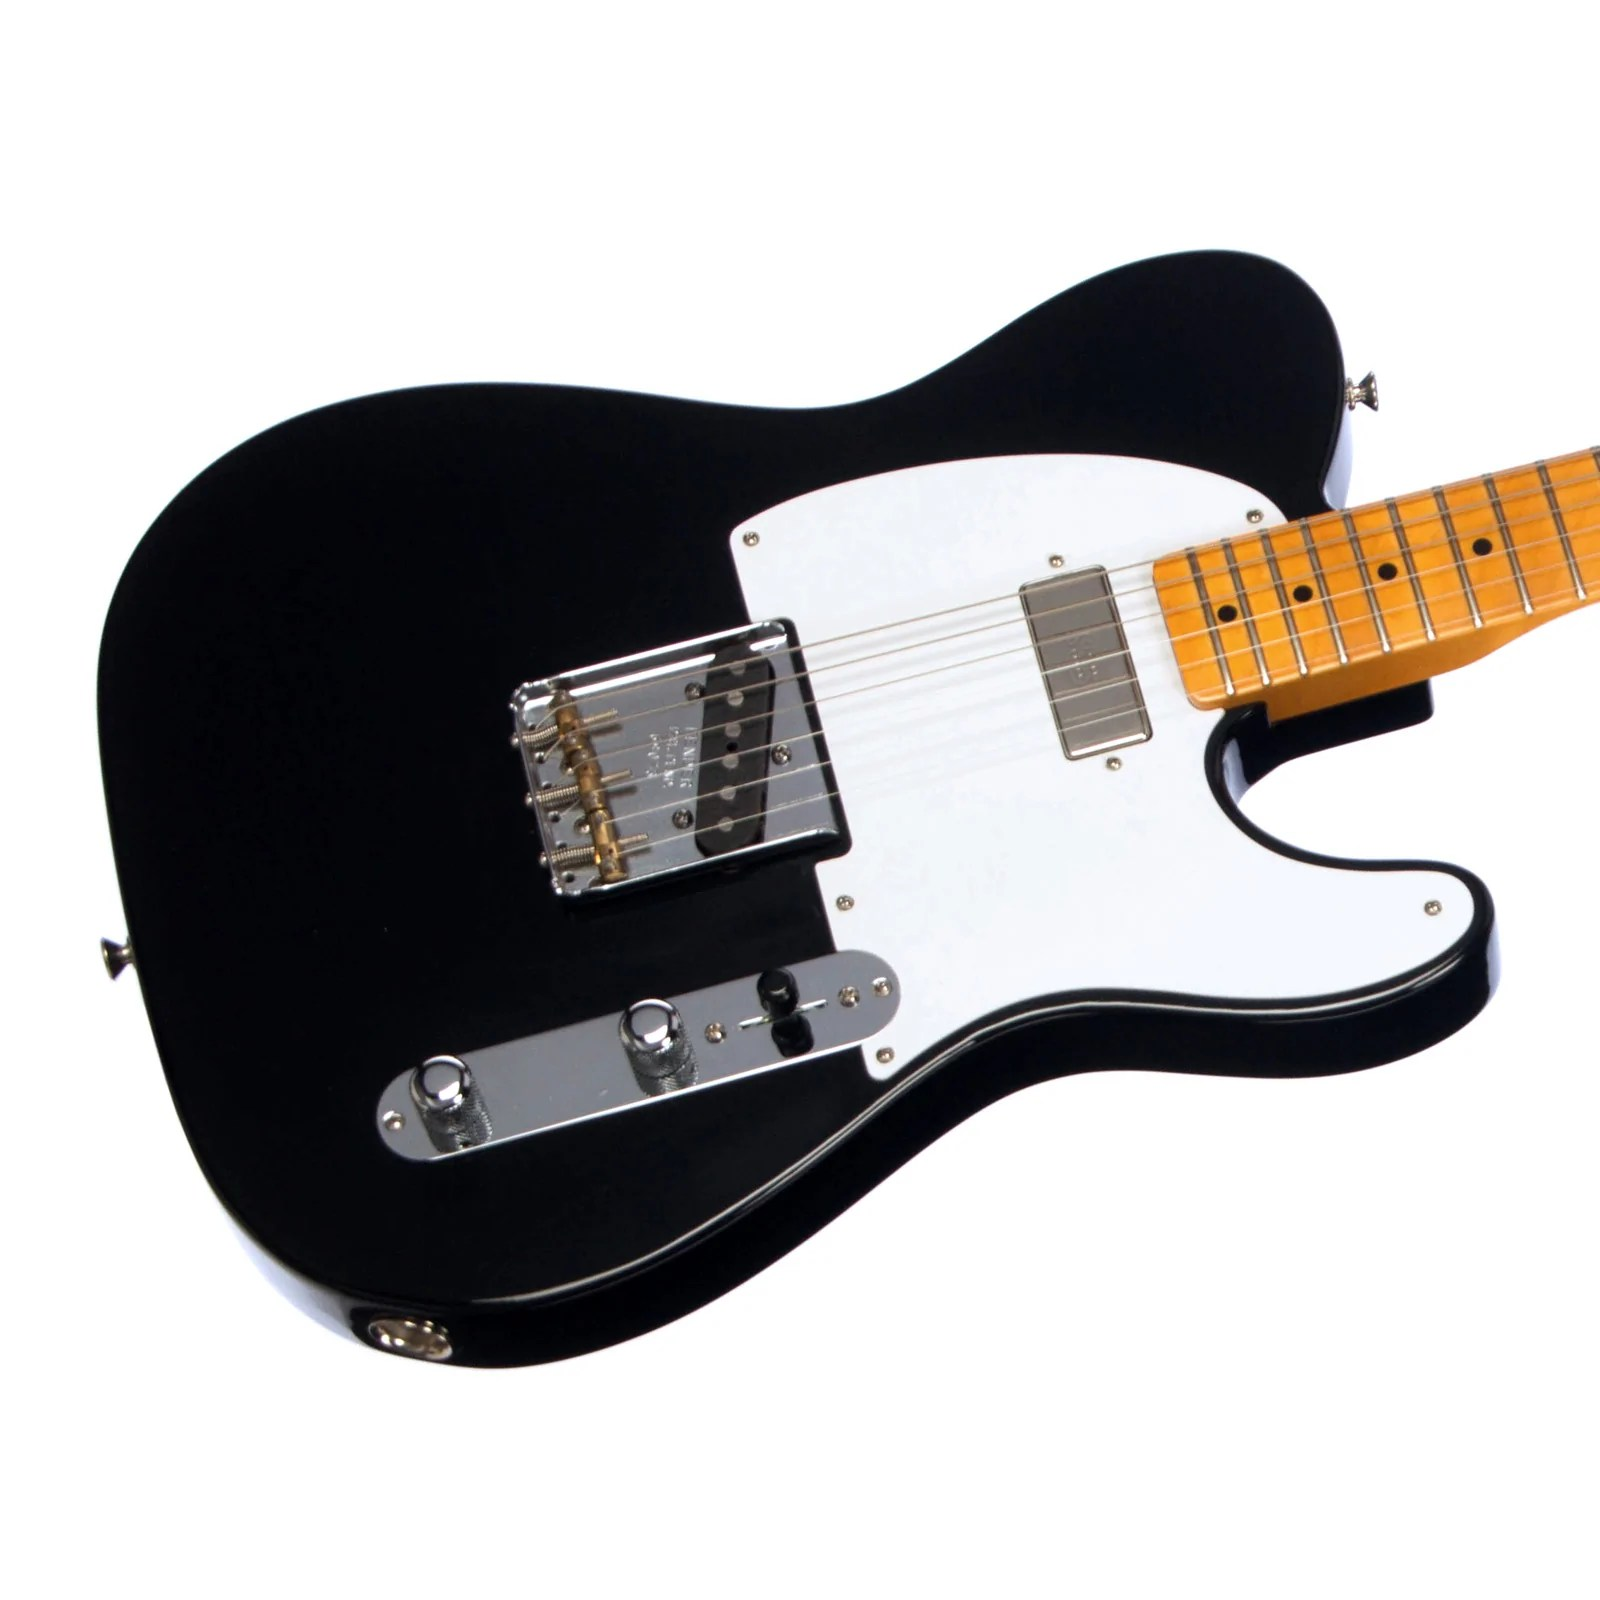 used fender vintage hot rod 52 telecaster black electric guitar american vintage ri 3952 telecaster loaded control plate jack wiring [ 1600 x 1600 Pixel ]